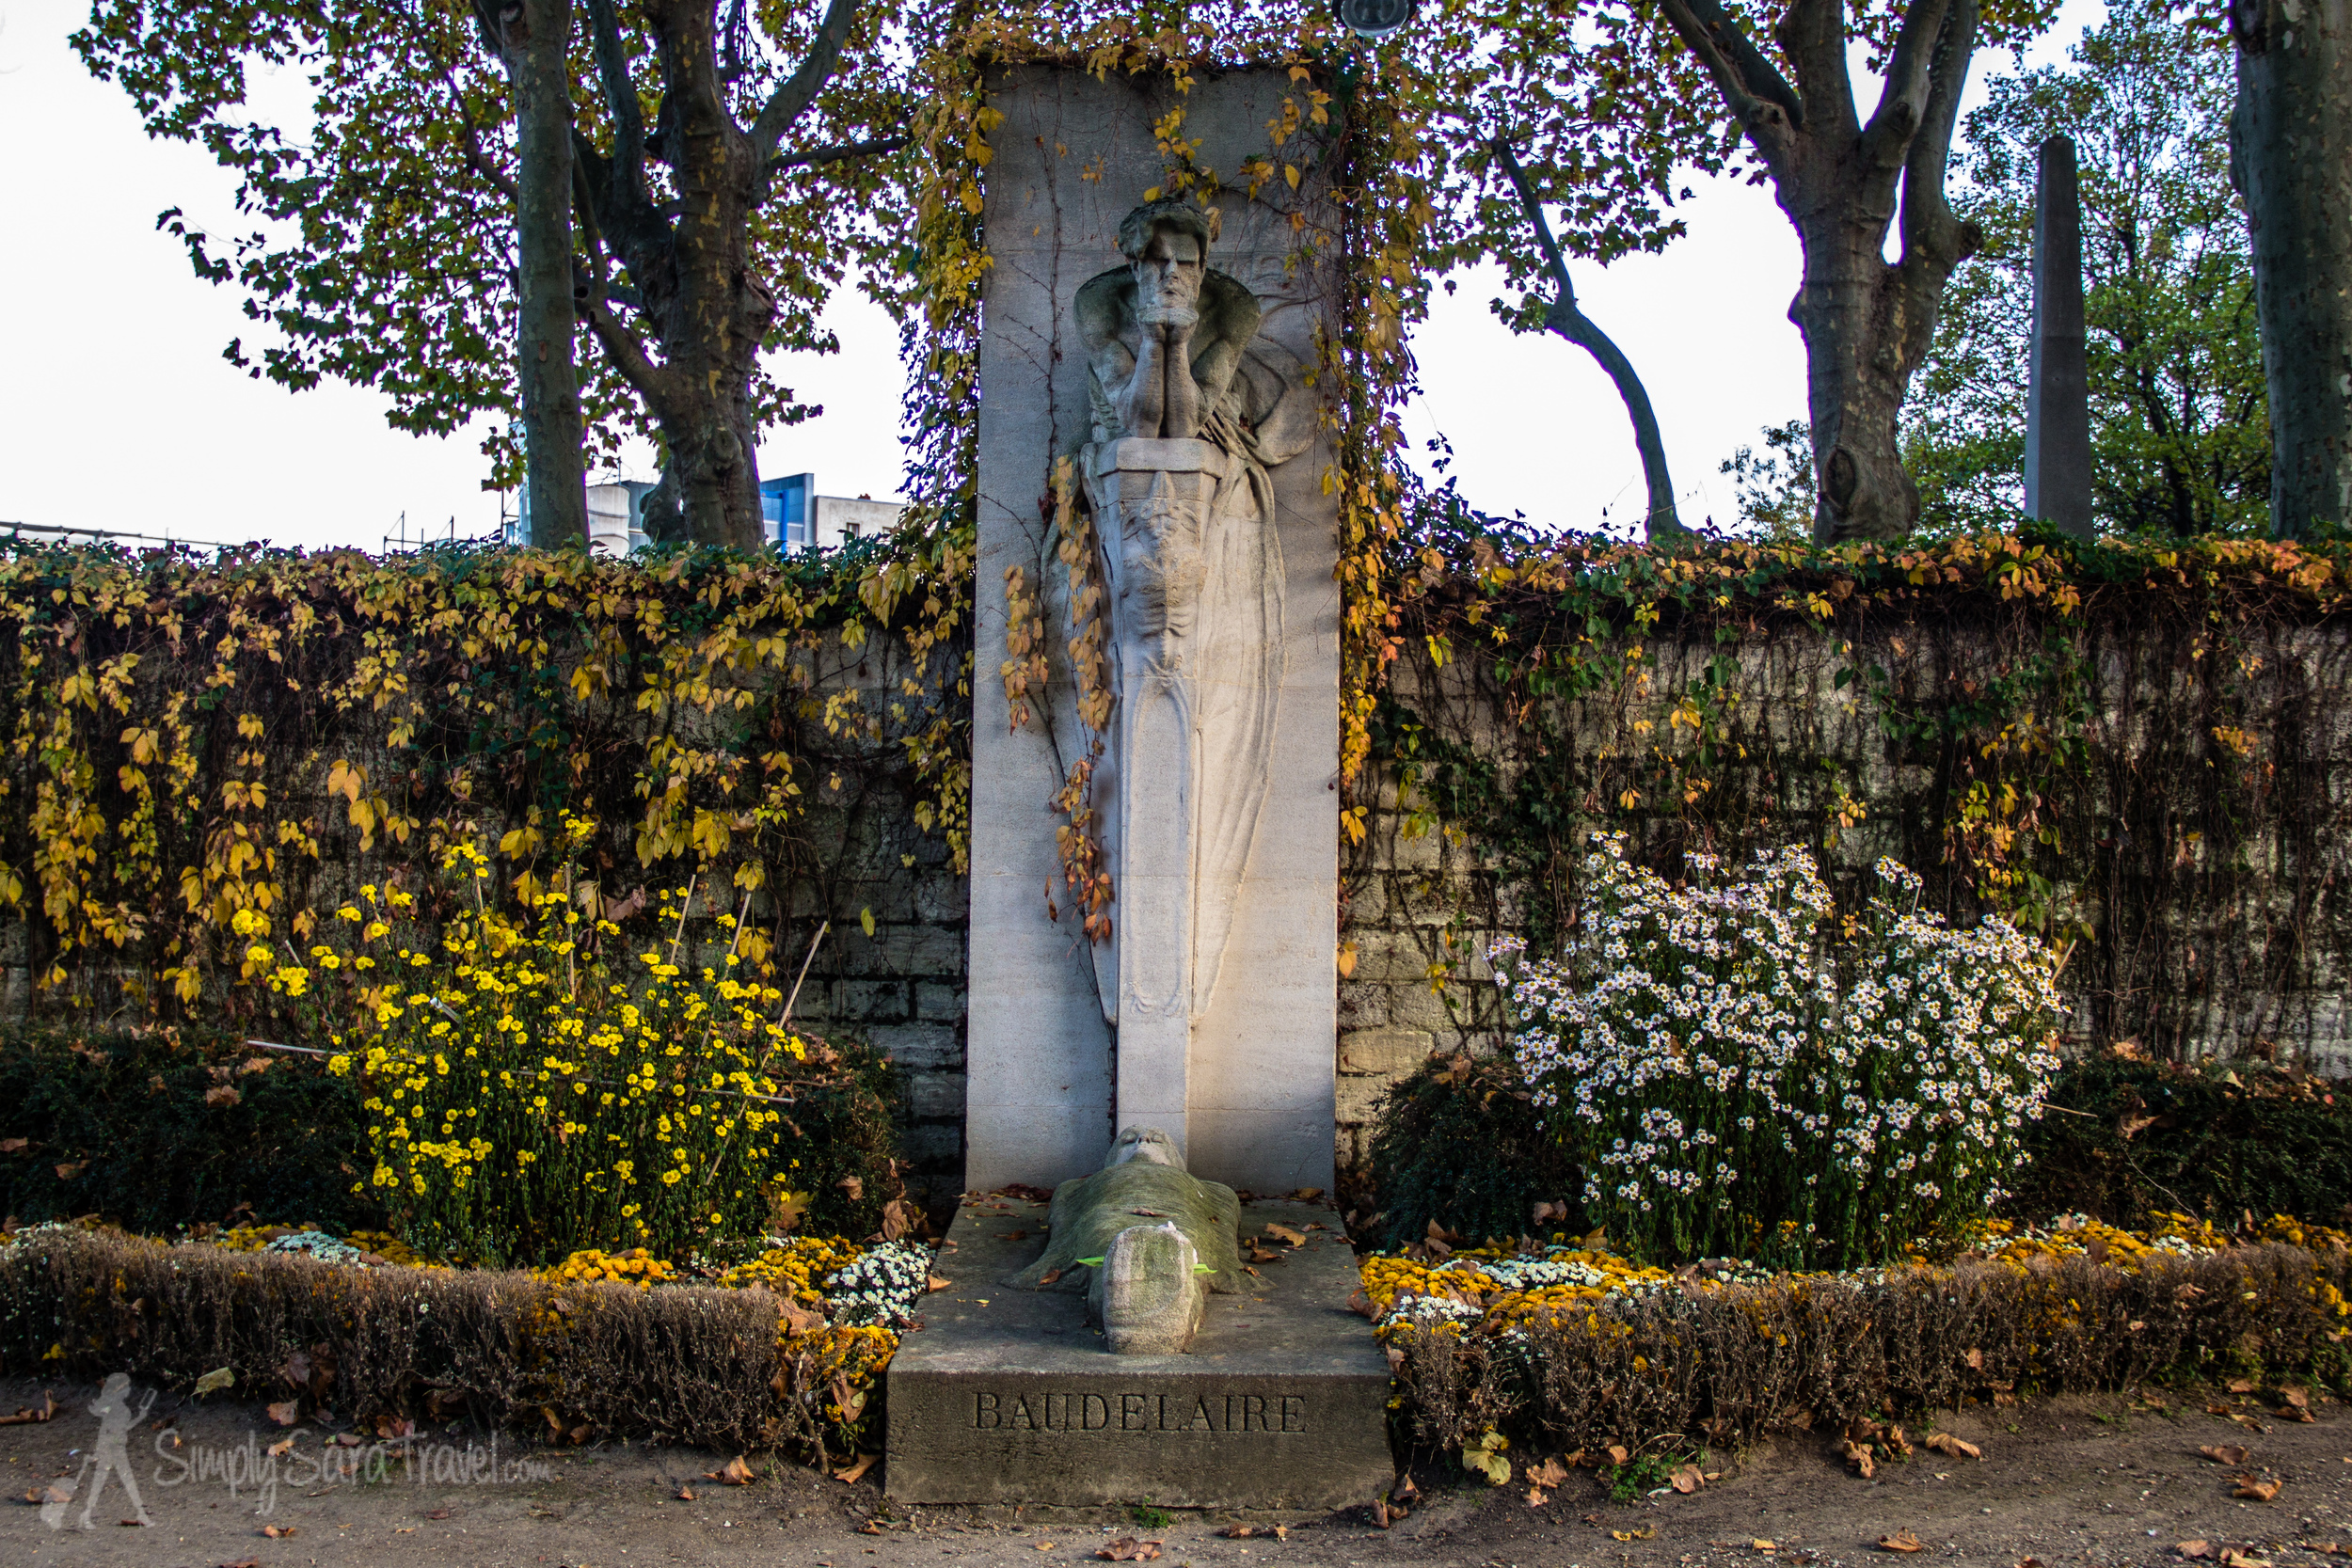 Tomb ofCharles Baudelaire, French poet